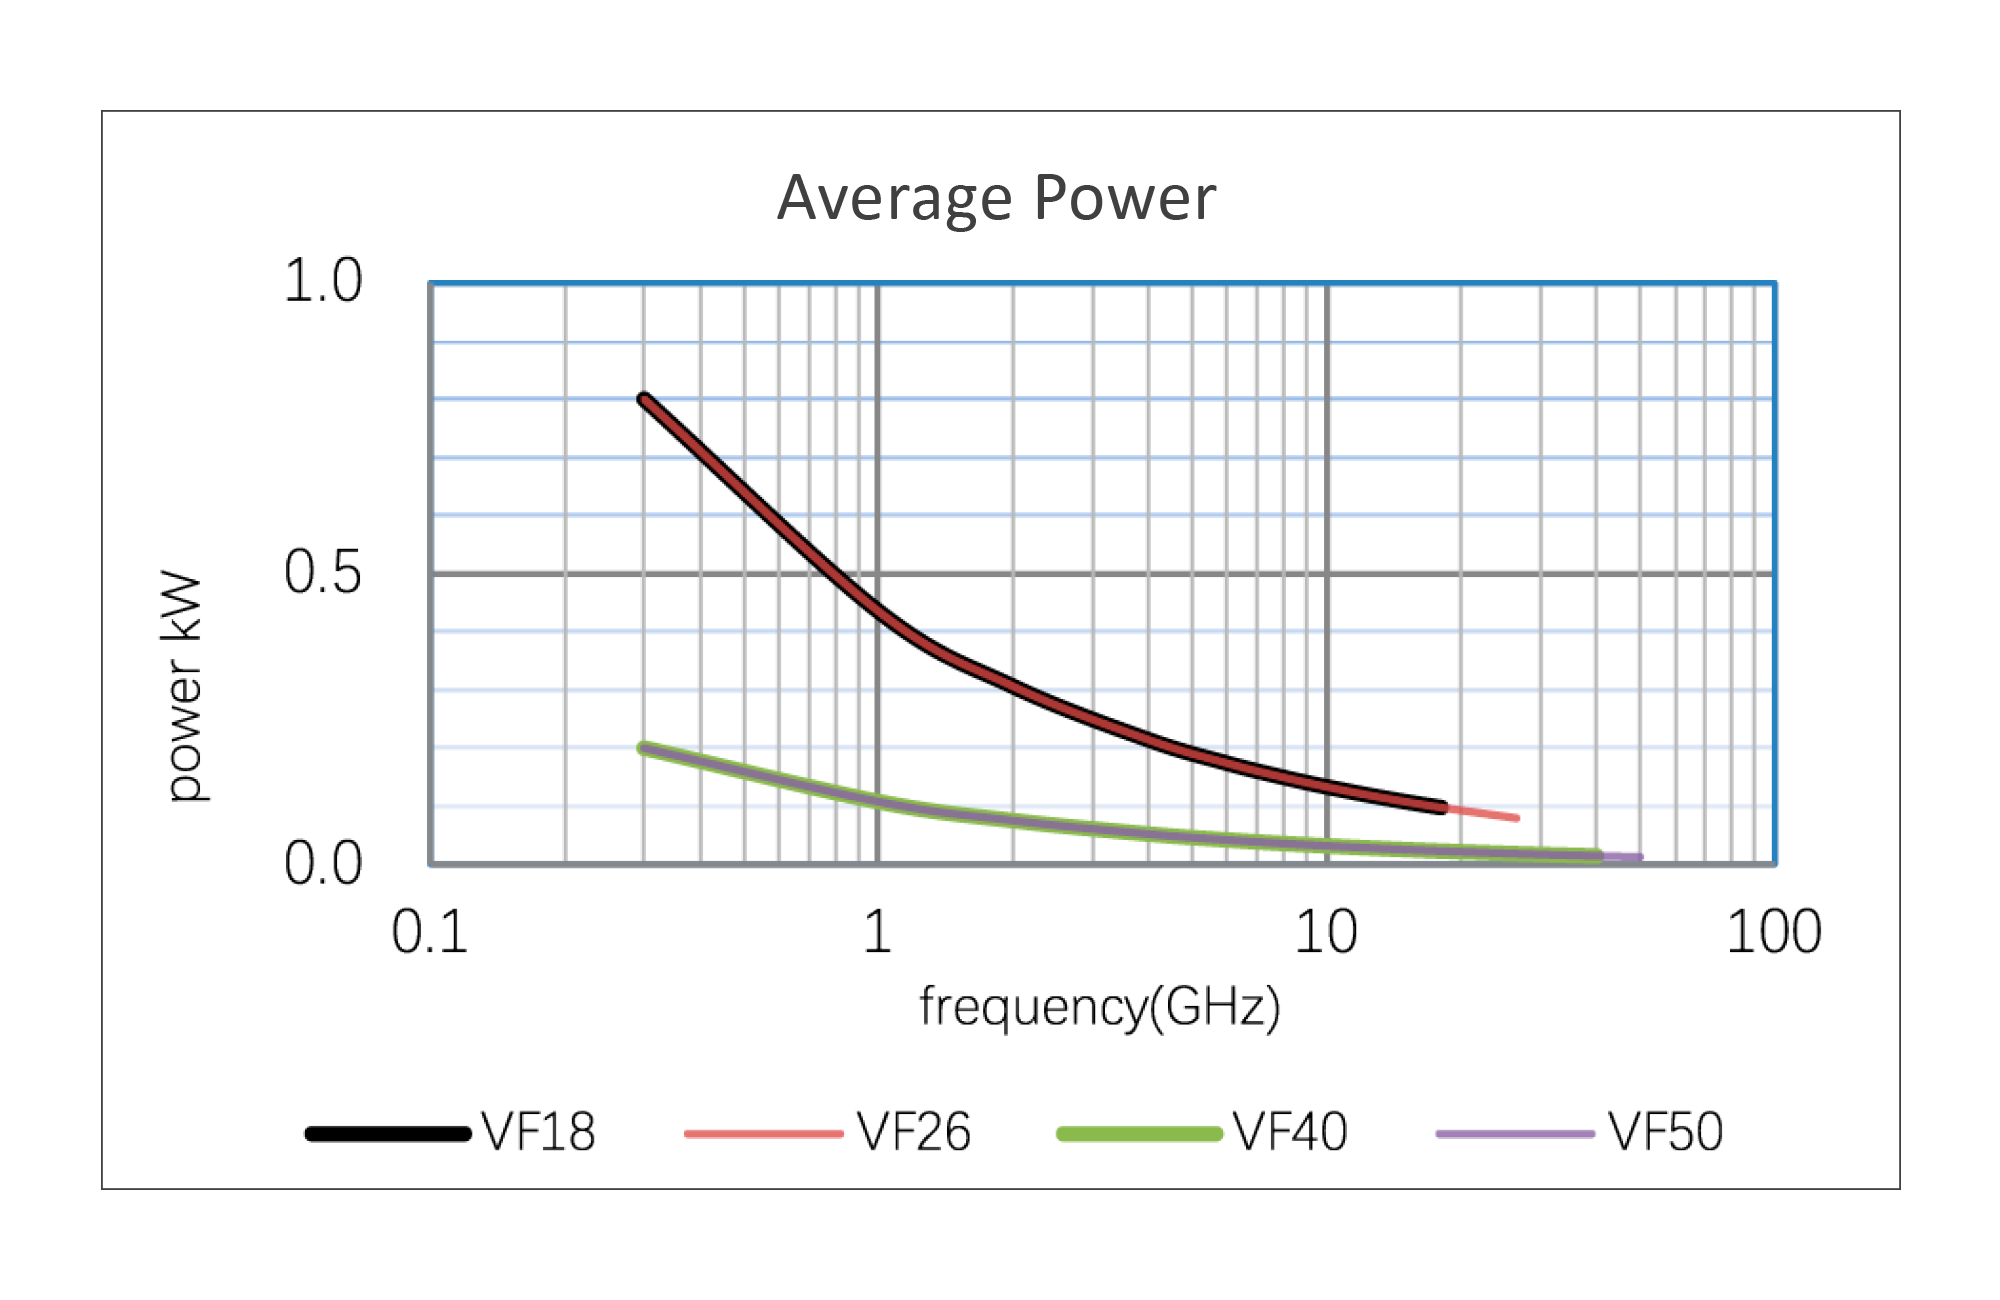 Continuum Technologies - Vero RF Cable Series - veroFLEX - Average Power